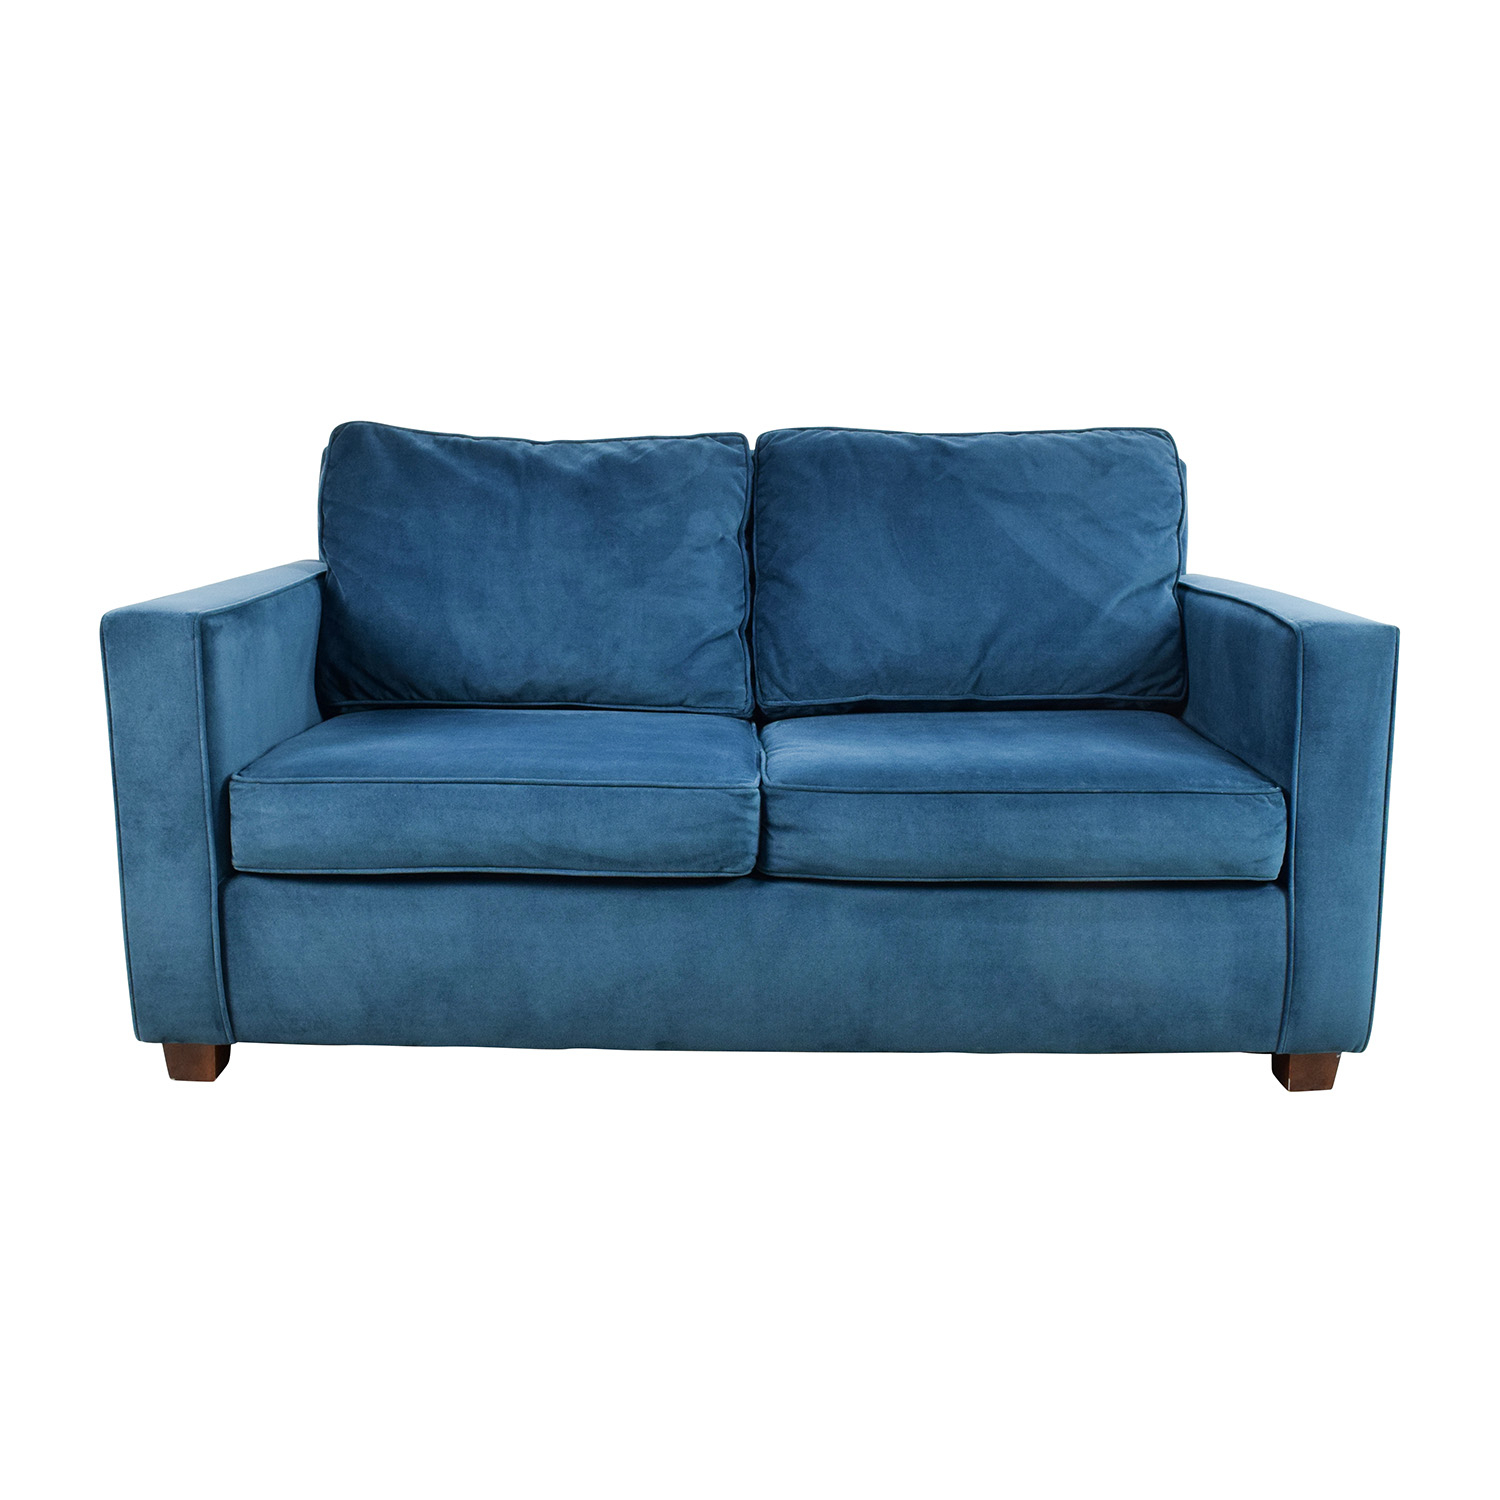 39% Off – West Elm West Elm Celestial Blue Henry Loveseat / Sofas Inside Elm Sofa Chairs (View 10 of 25)